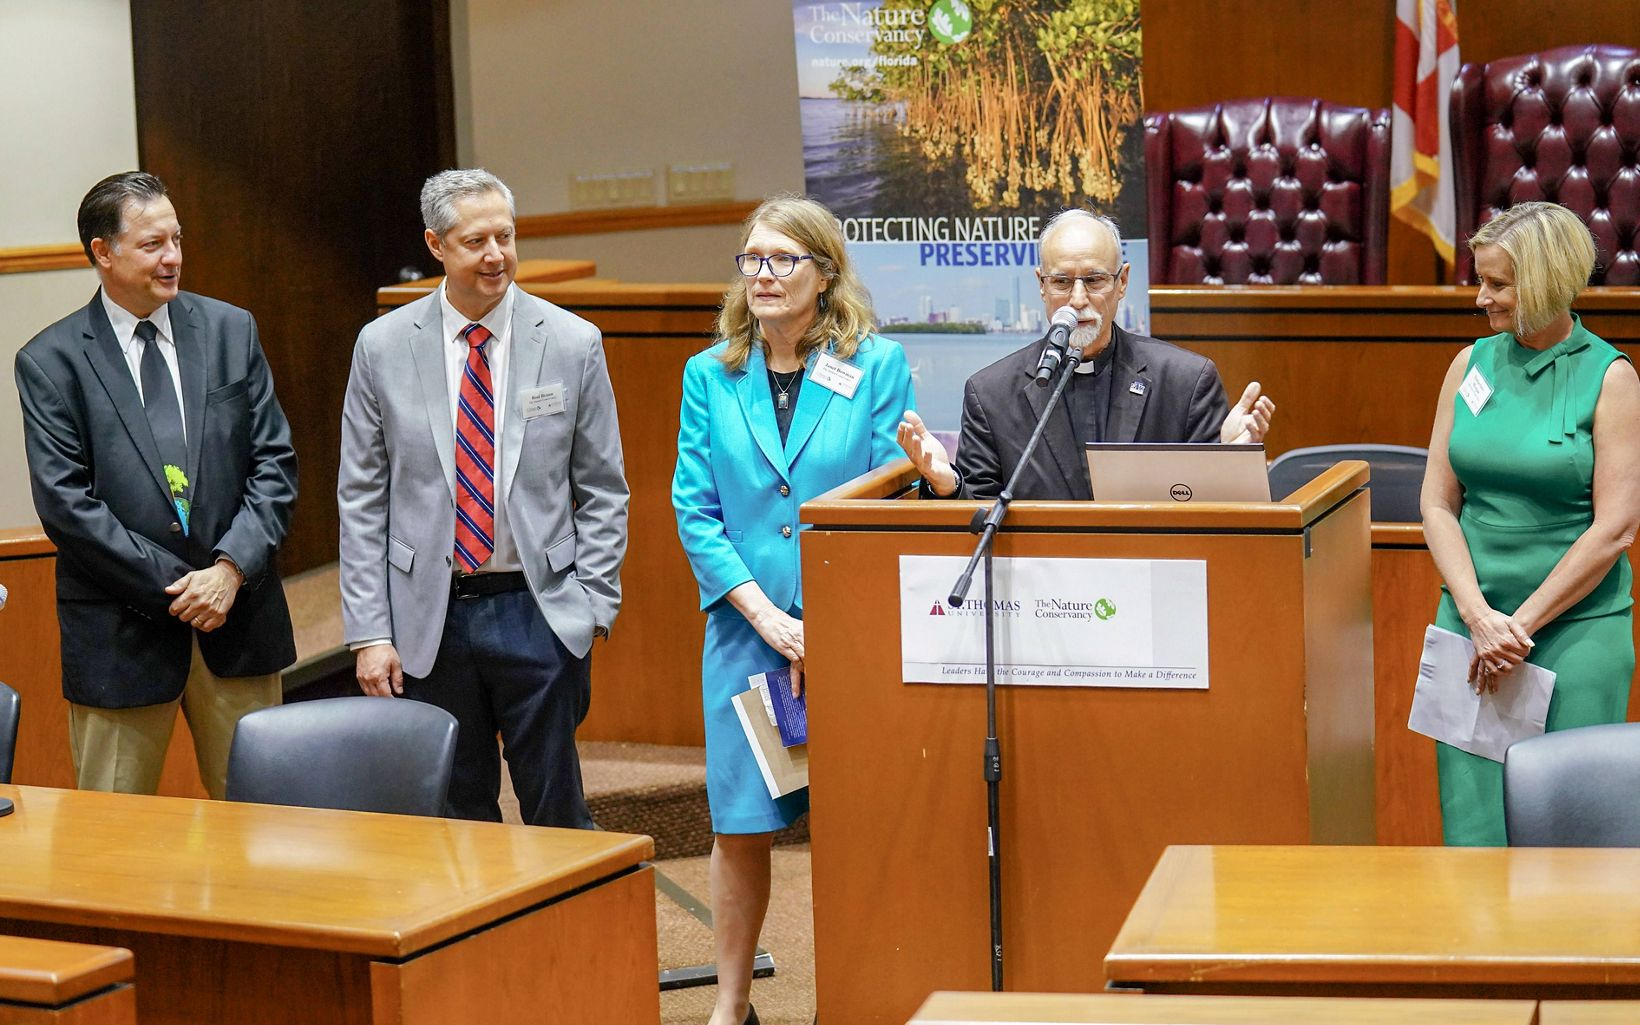 introduces the panel (from left): STU Law Professor Keith Rizzardi, TNC Climate Mgr. Rod Braun, TNC Policy Advisor Janet Bowman, TNC FL Executive Director Temperince Morgan